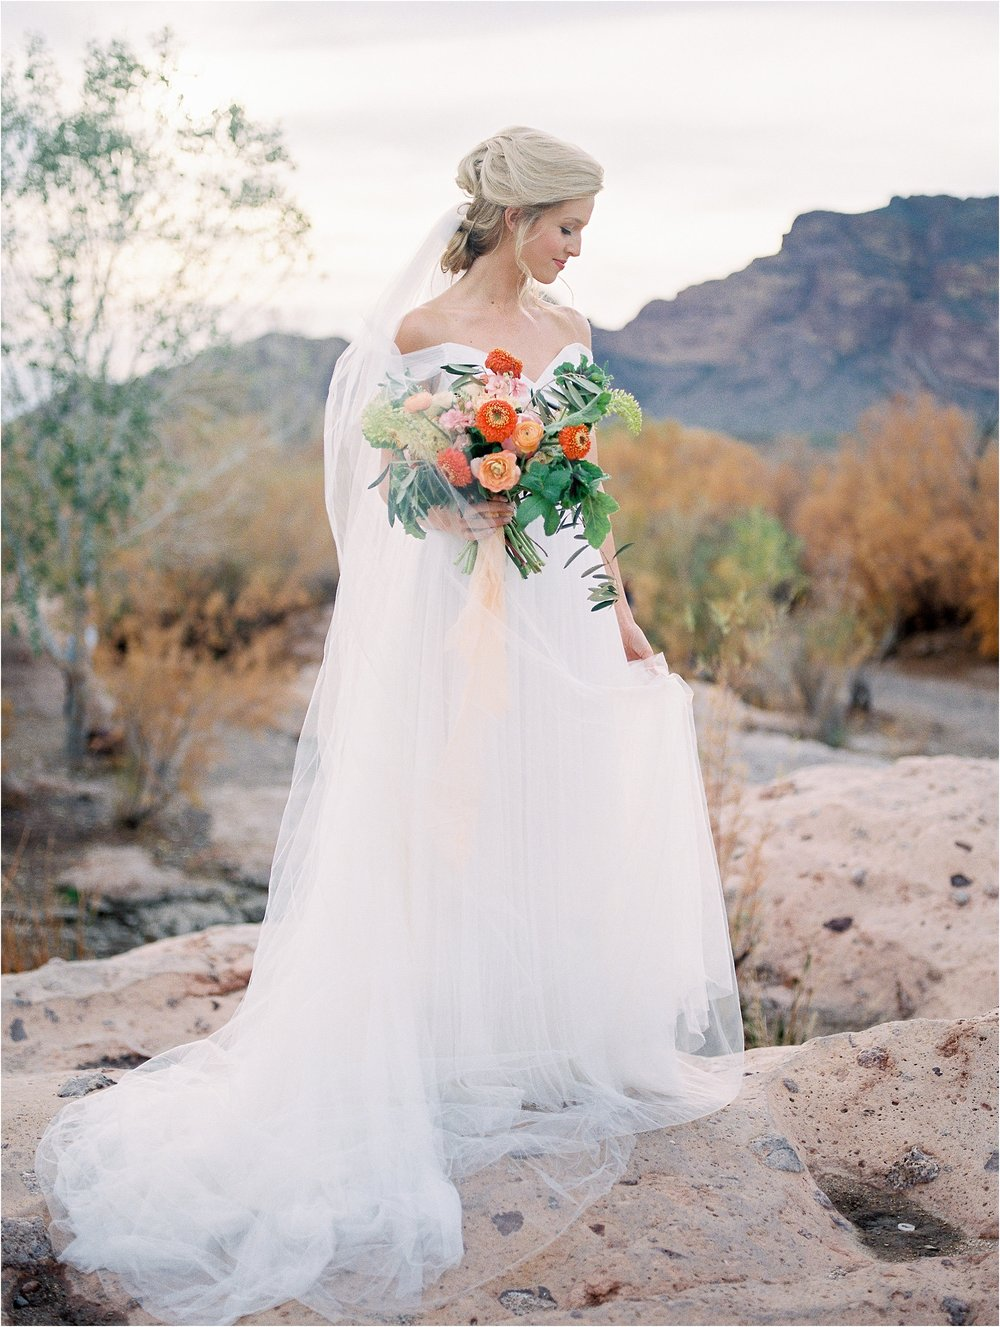 Sarah Jane Photography Film Hybrid Scottsdale Phoenix Arizona Destination Wedding Photographer Ally Ryan Desert_0006.jpg